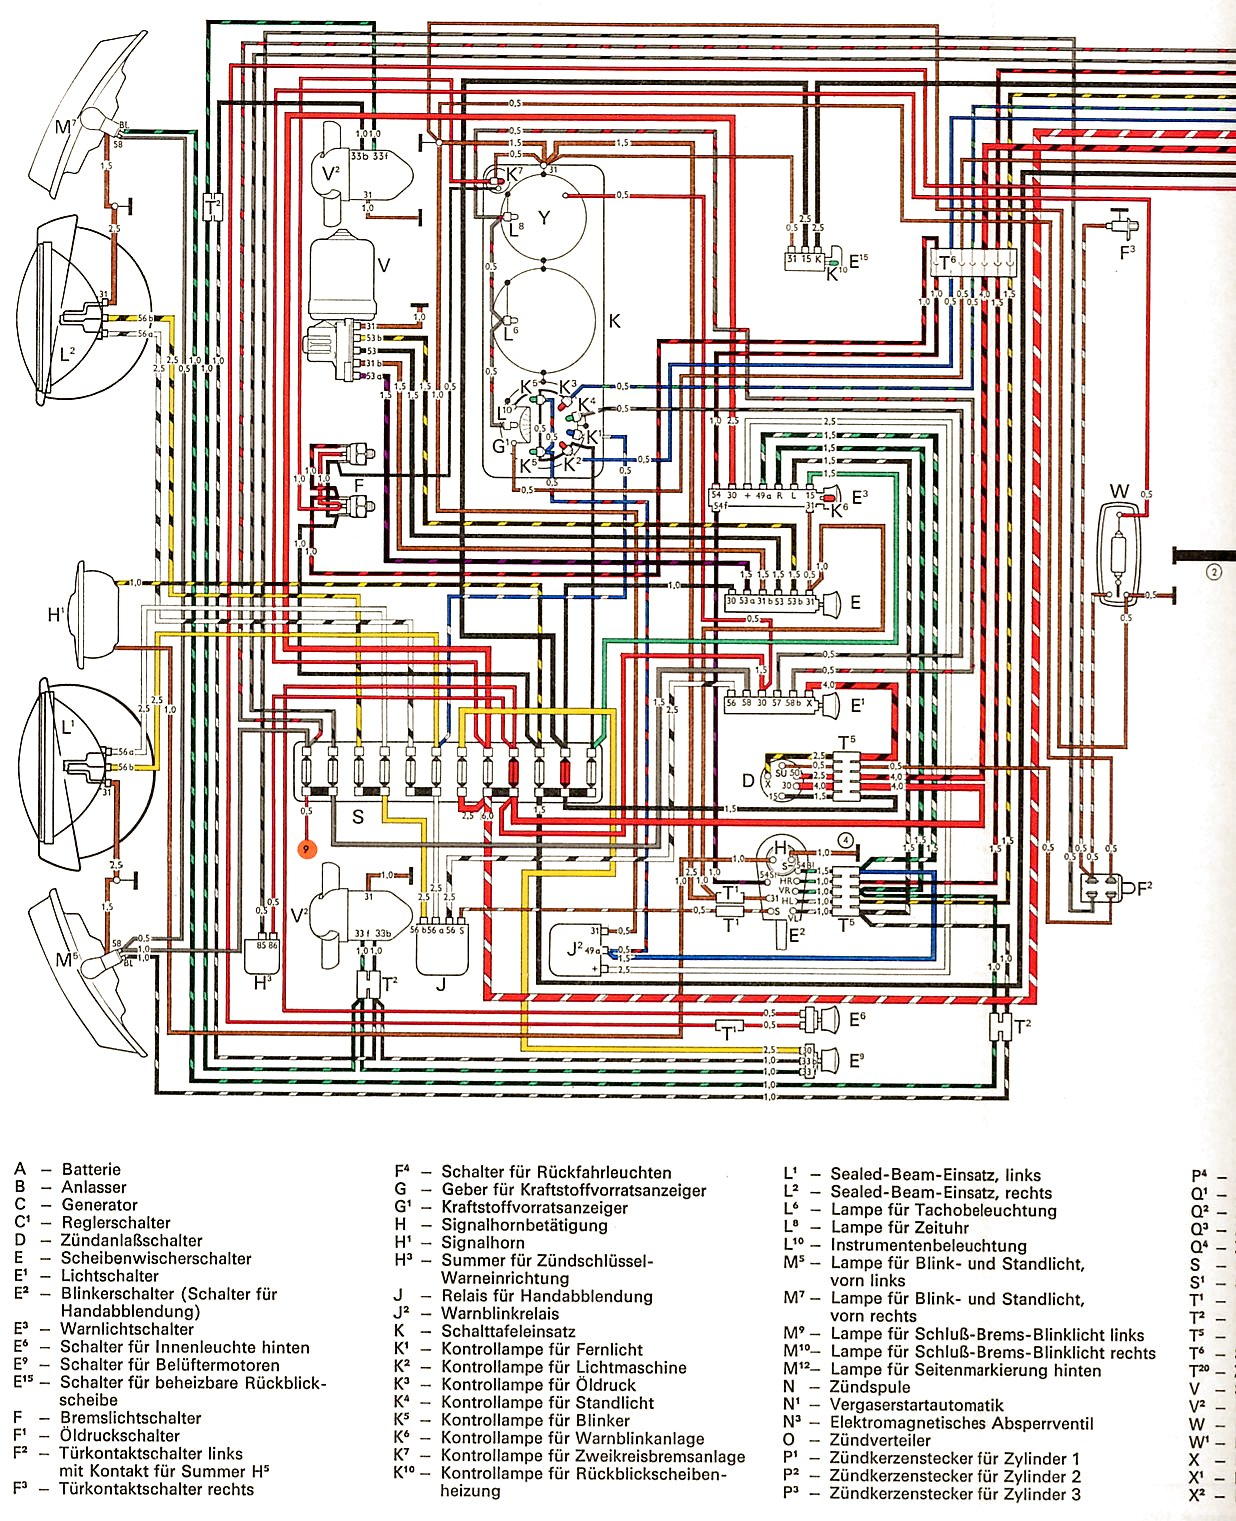 Vw Bus And Other Wiring Diagrams Volkswagen Schematics Com